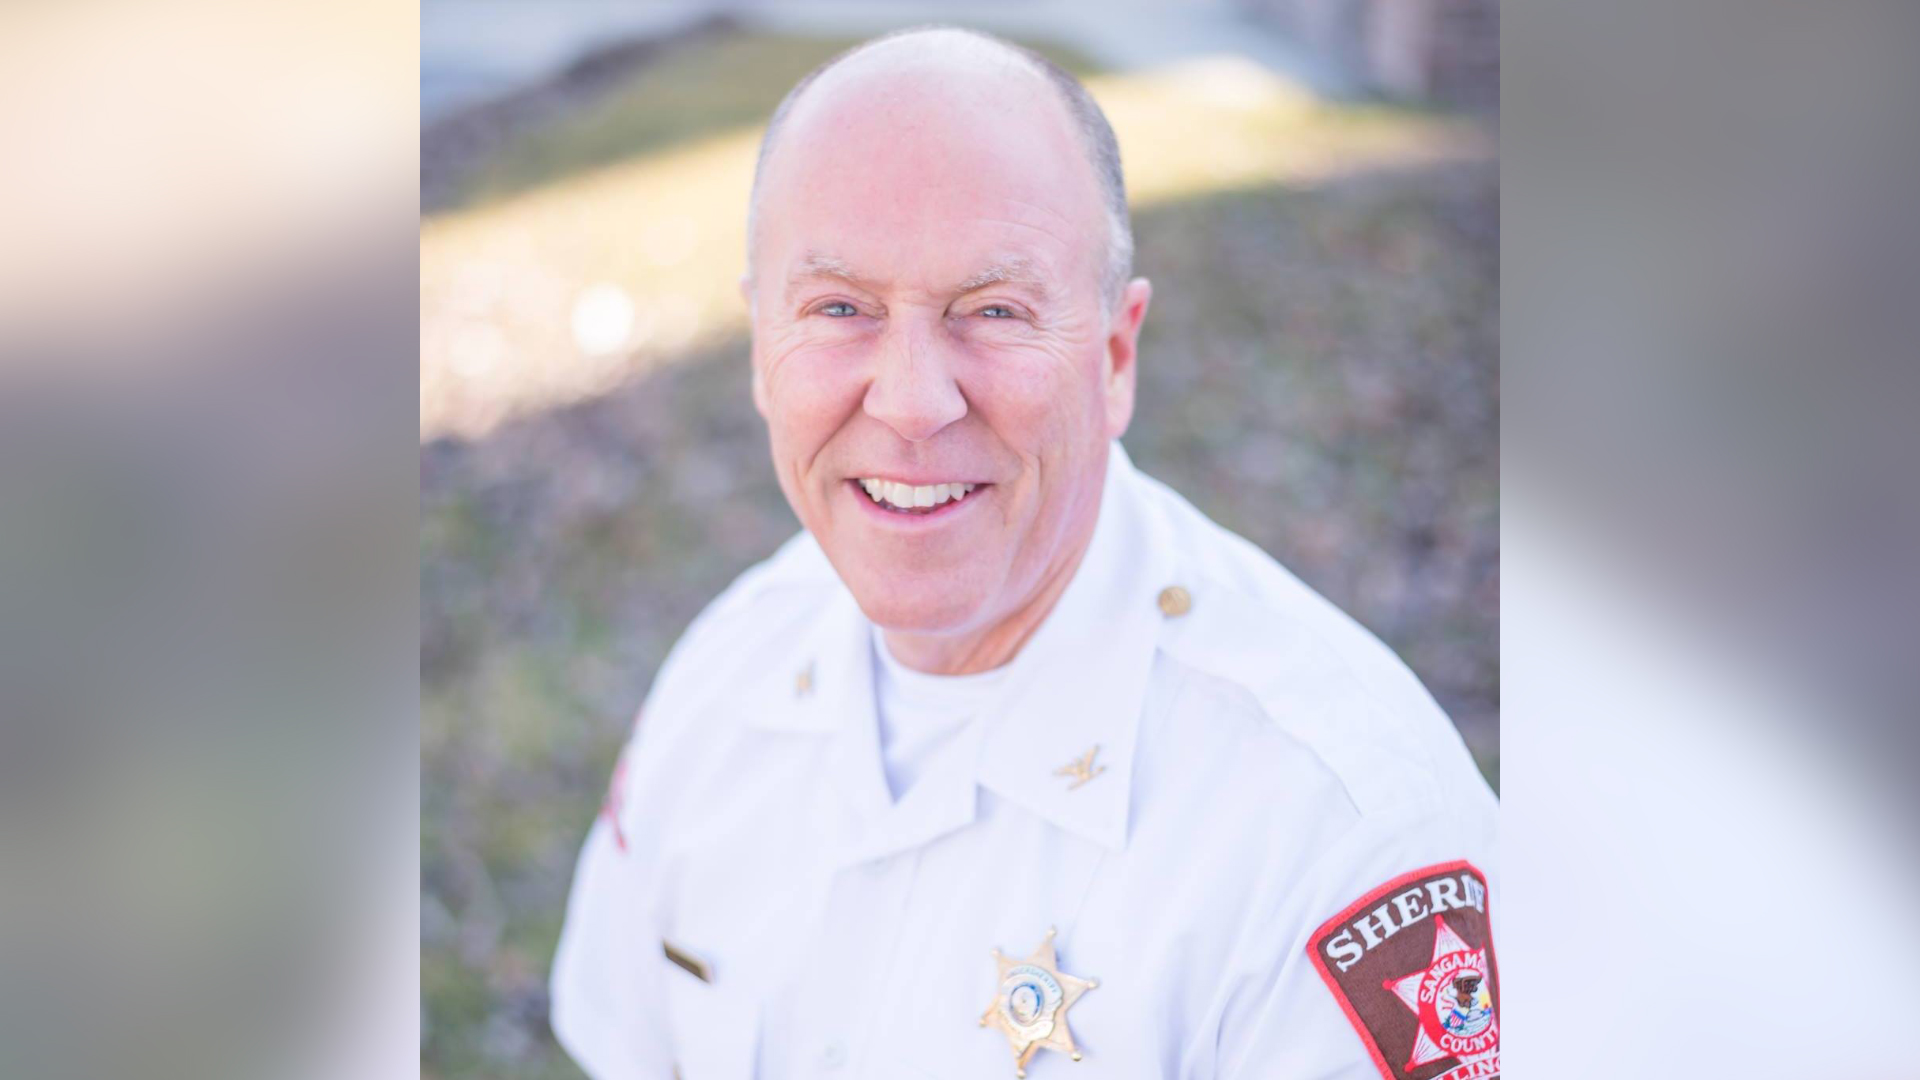 Campbell Elected Sheriff, Aiello Wins County Treasurer Race